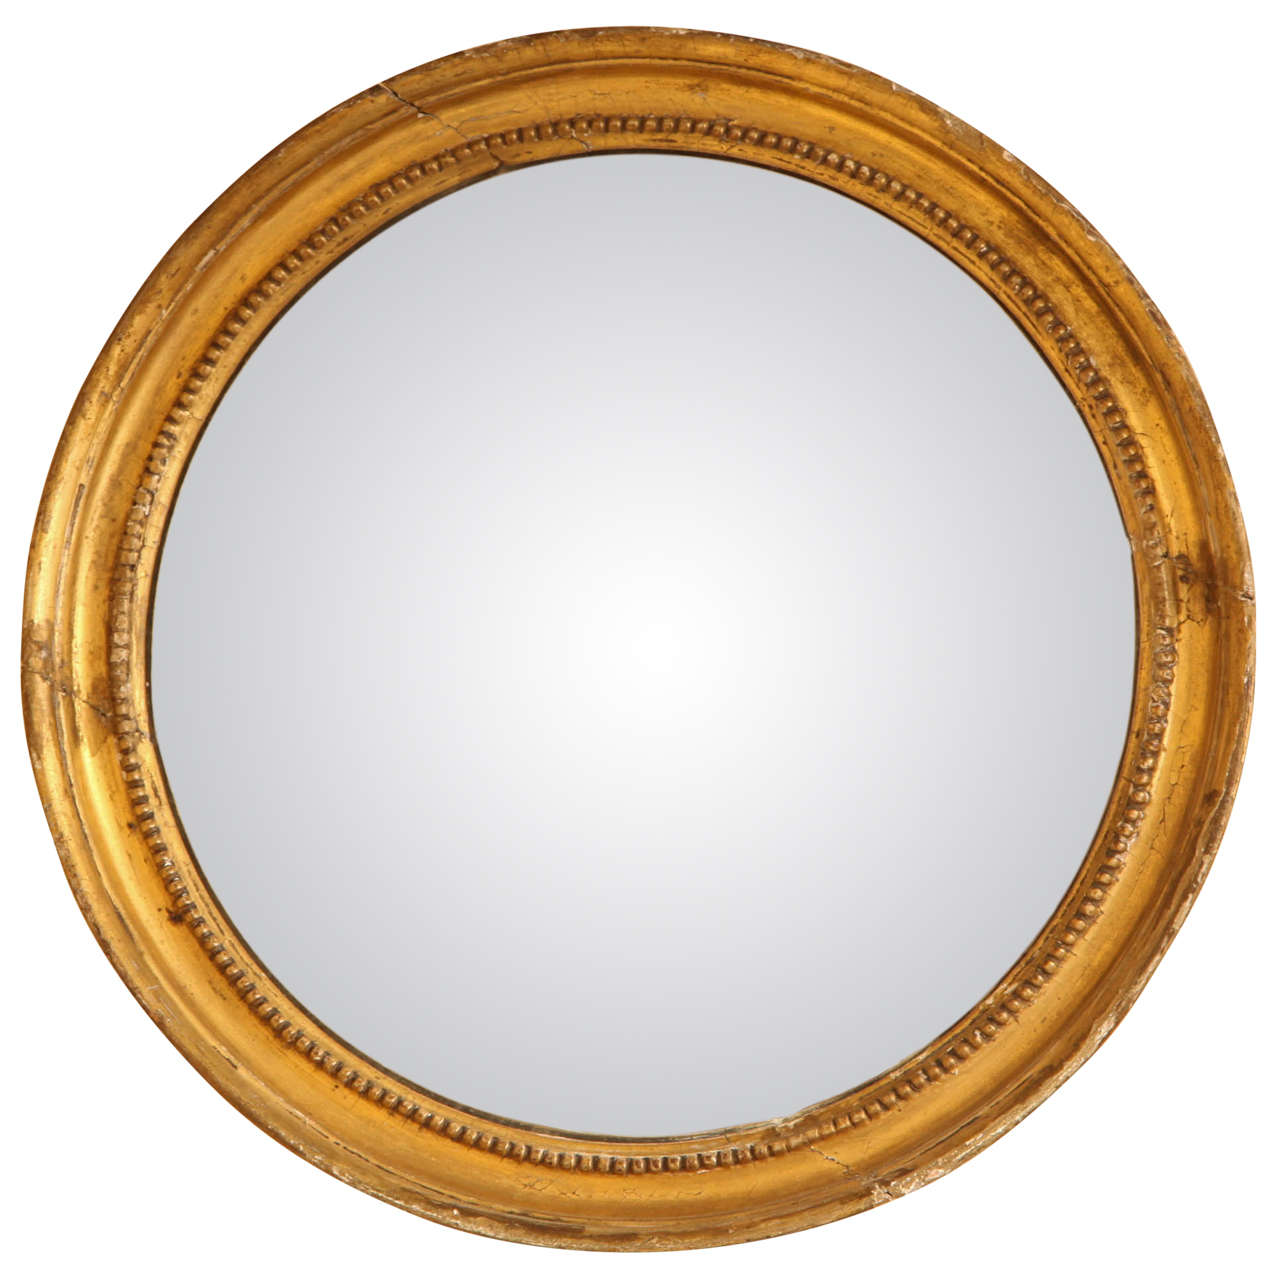 Late 19th century english convex mirror for sale at 1stdibs for Convex mirror